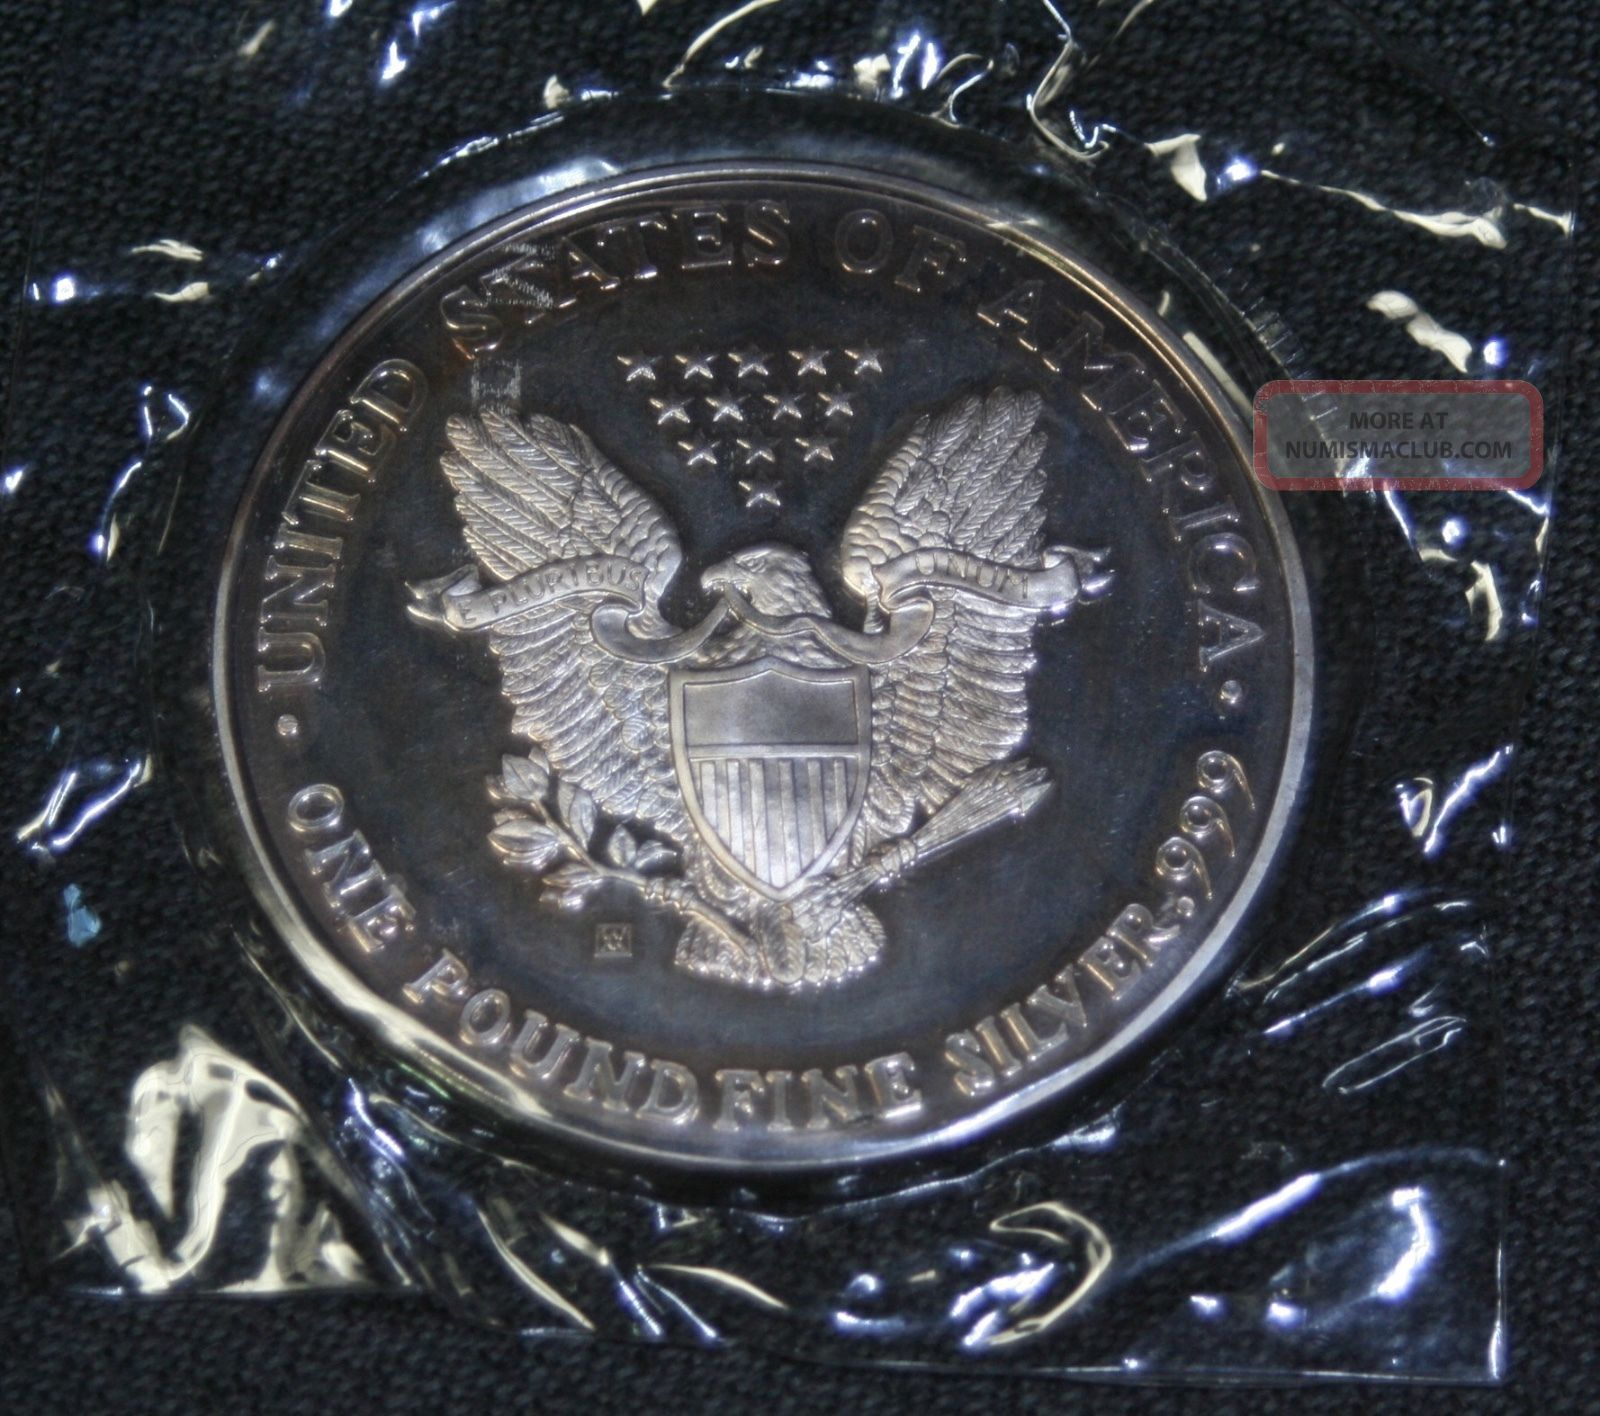 1992 Silver Eagle One Full Pound 999 Fine Silver 16 Troy